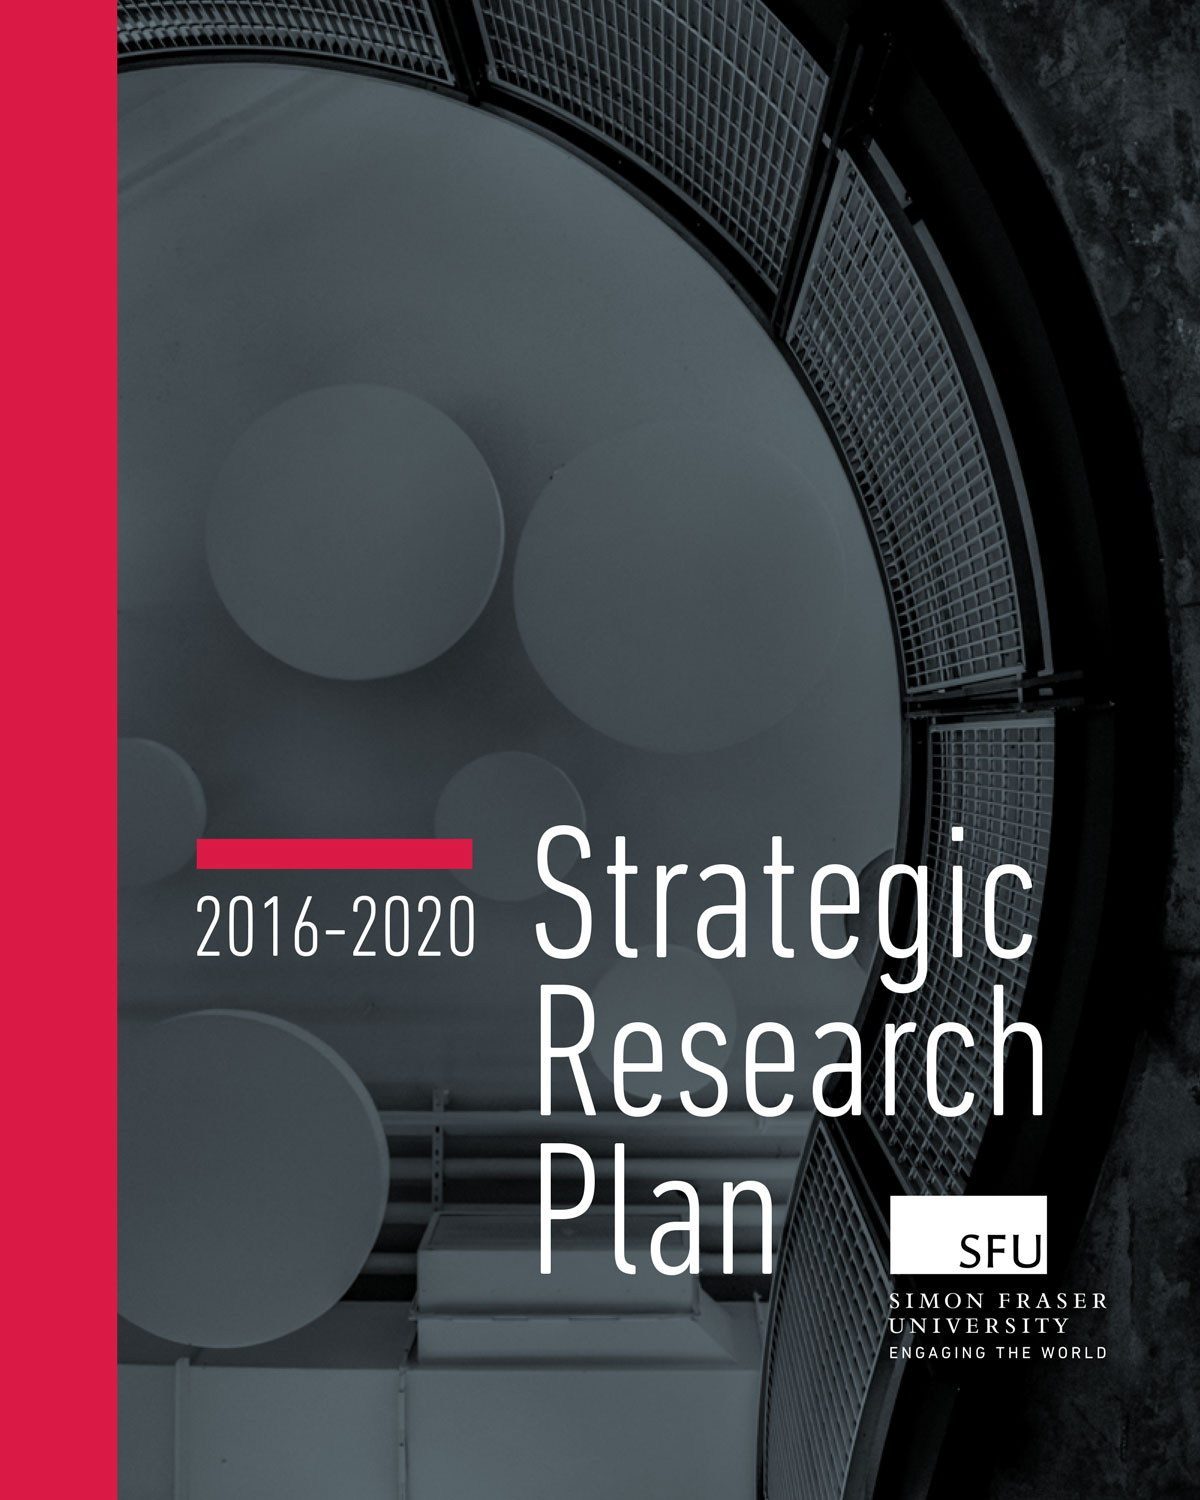 The cover of the print-version of SFU's Strategic Research Plan